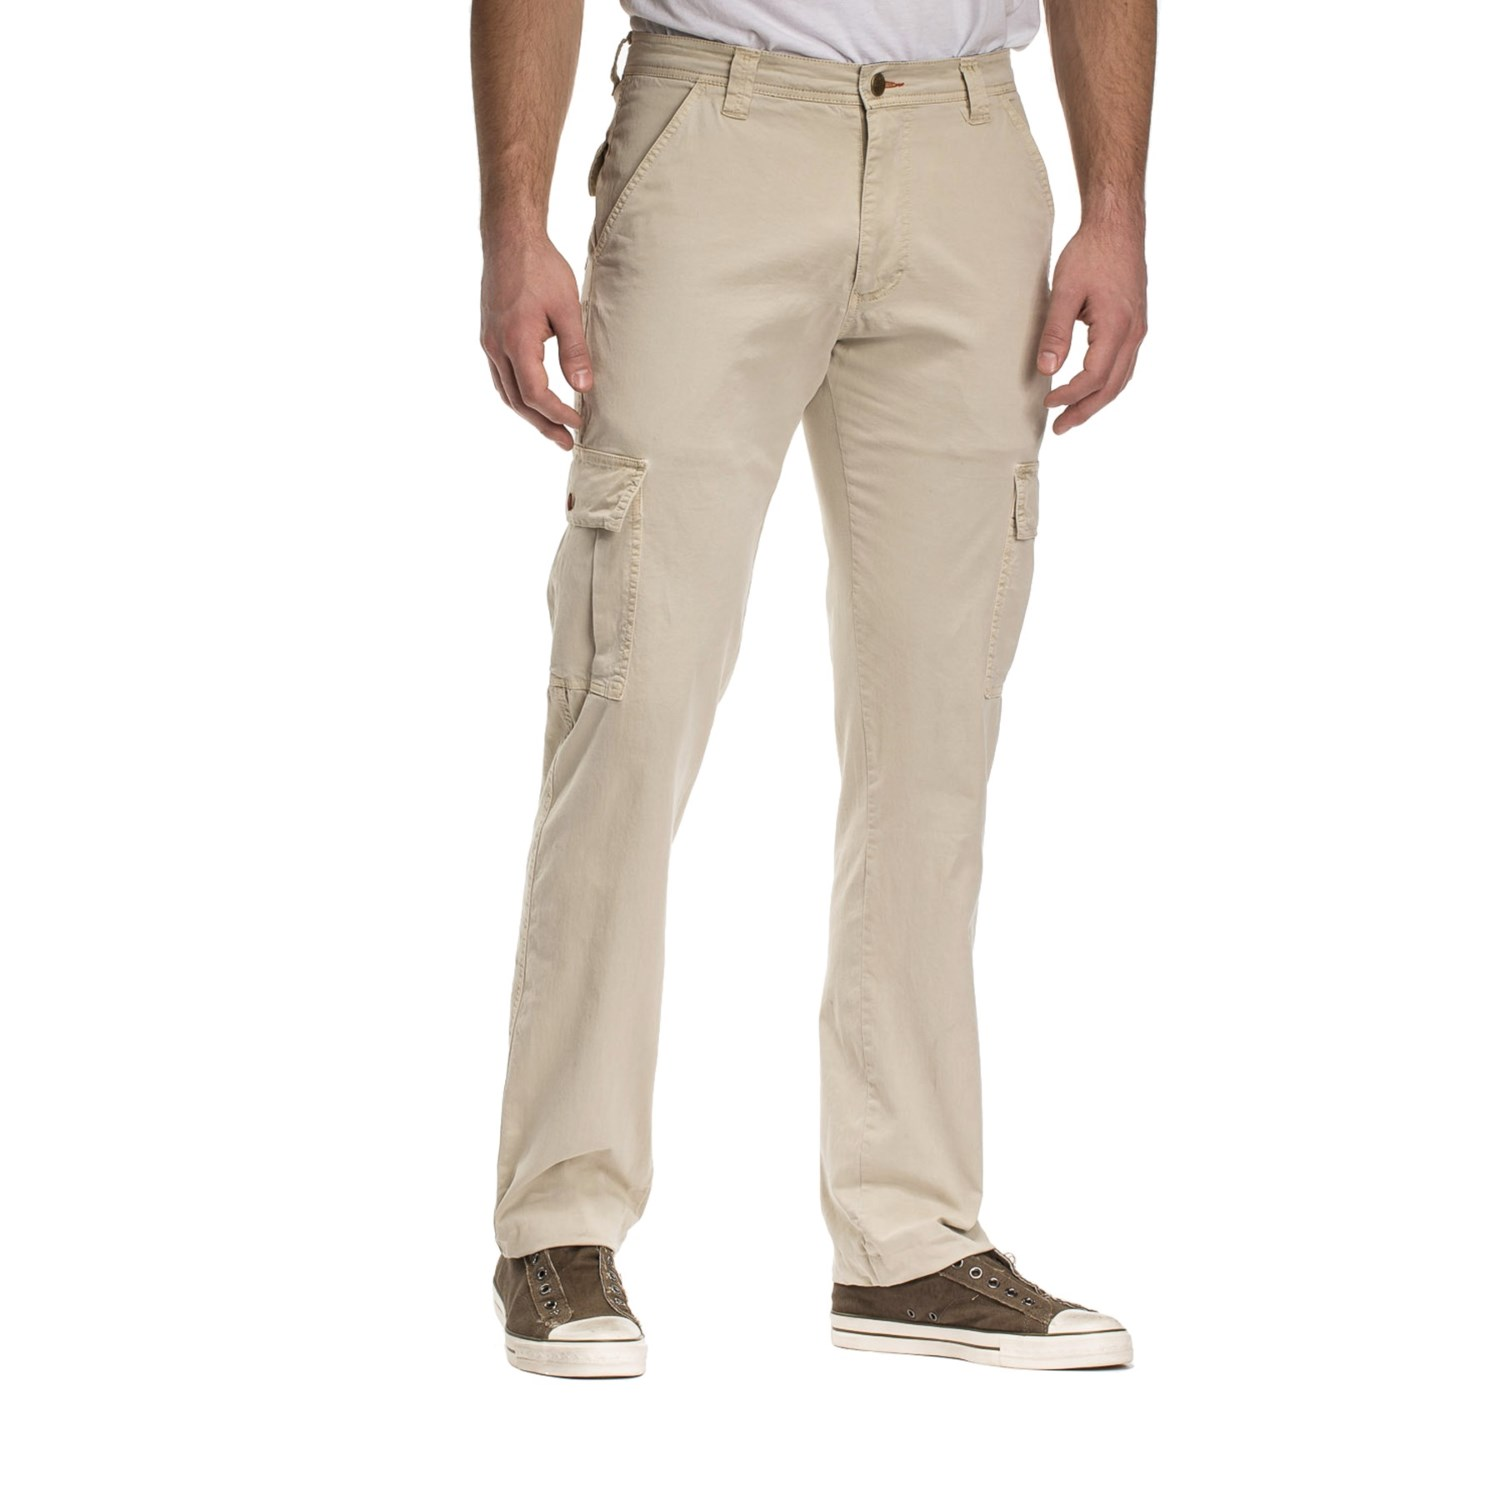 Agave denim infantry naples flex cargo pants relaxed fit for Agave naples